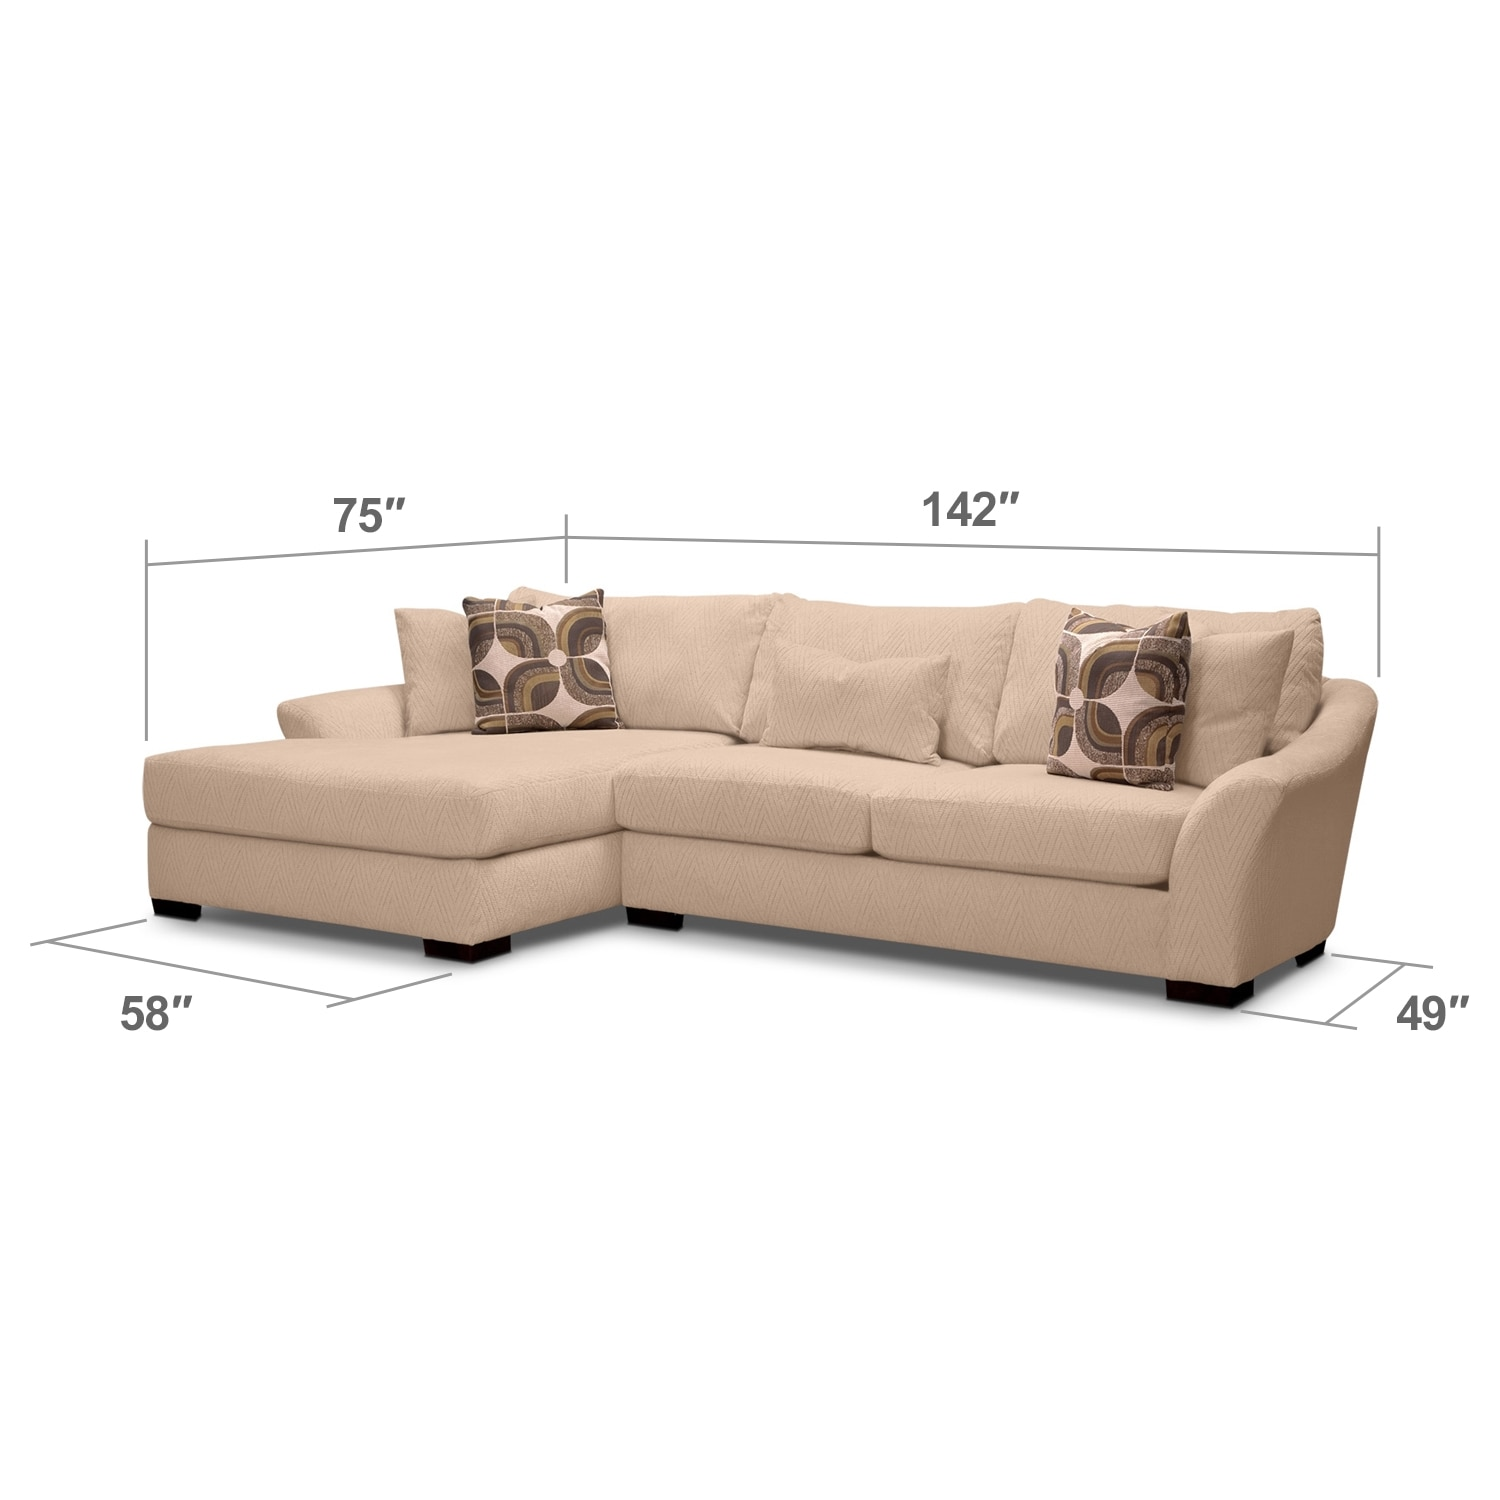 Living Room Furniture - Orleans Cream 2 Pc. Sectional